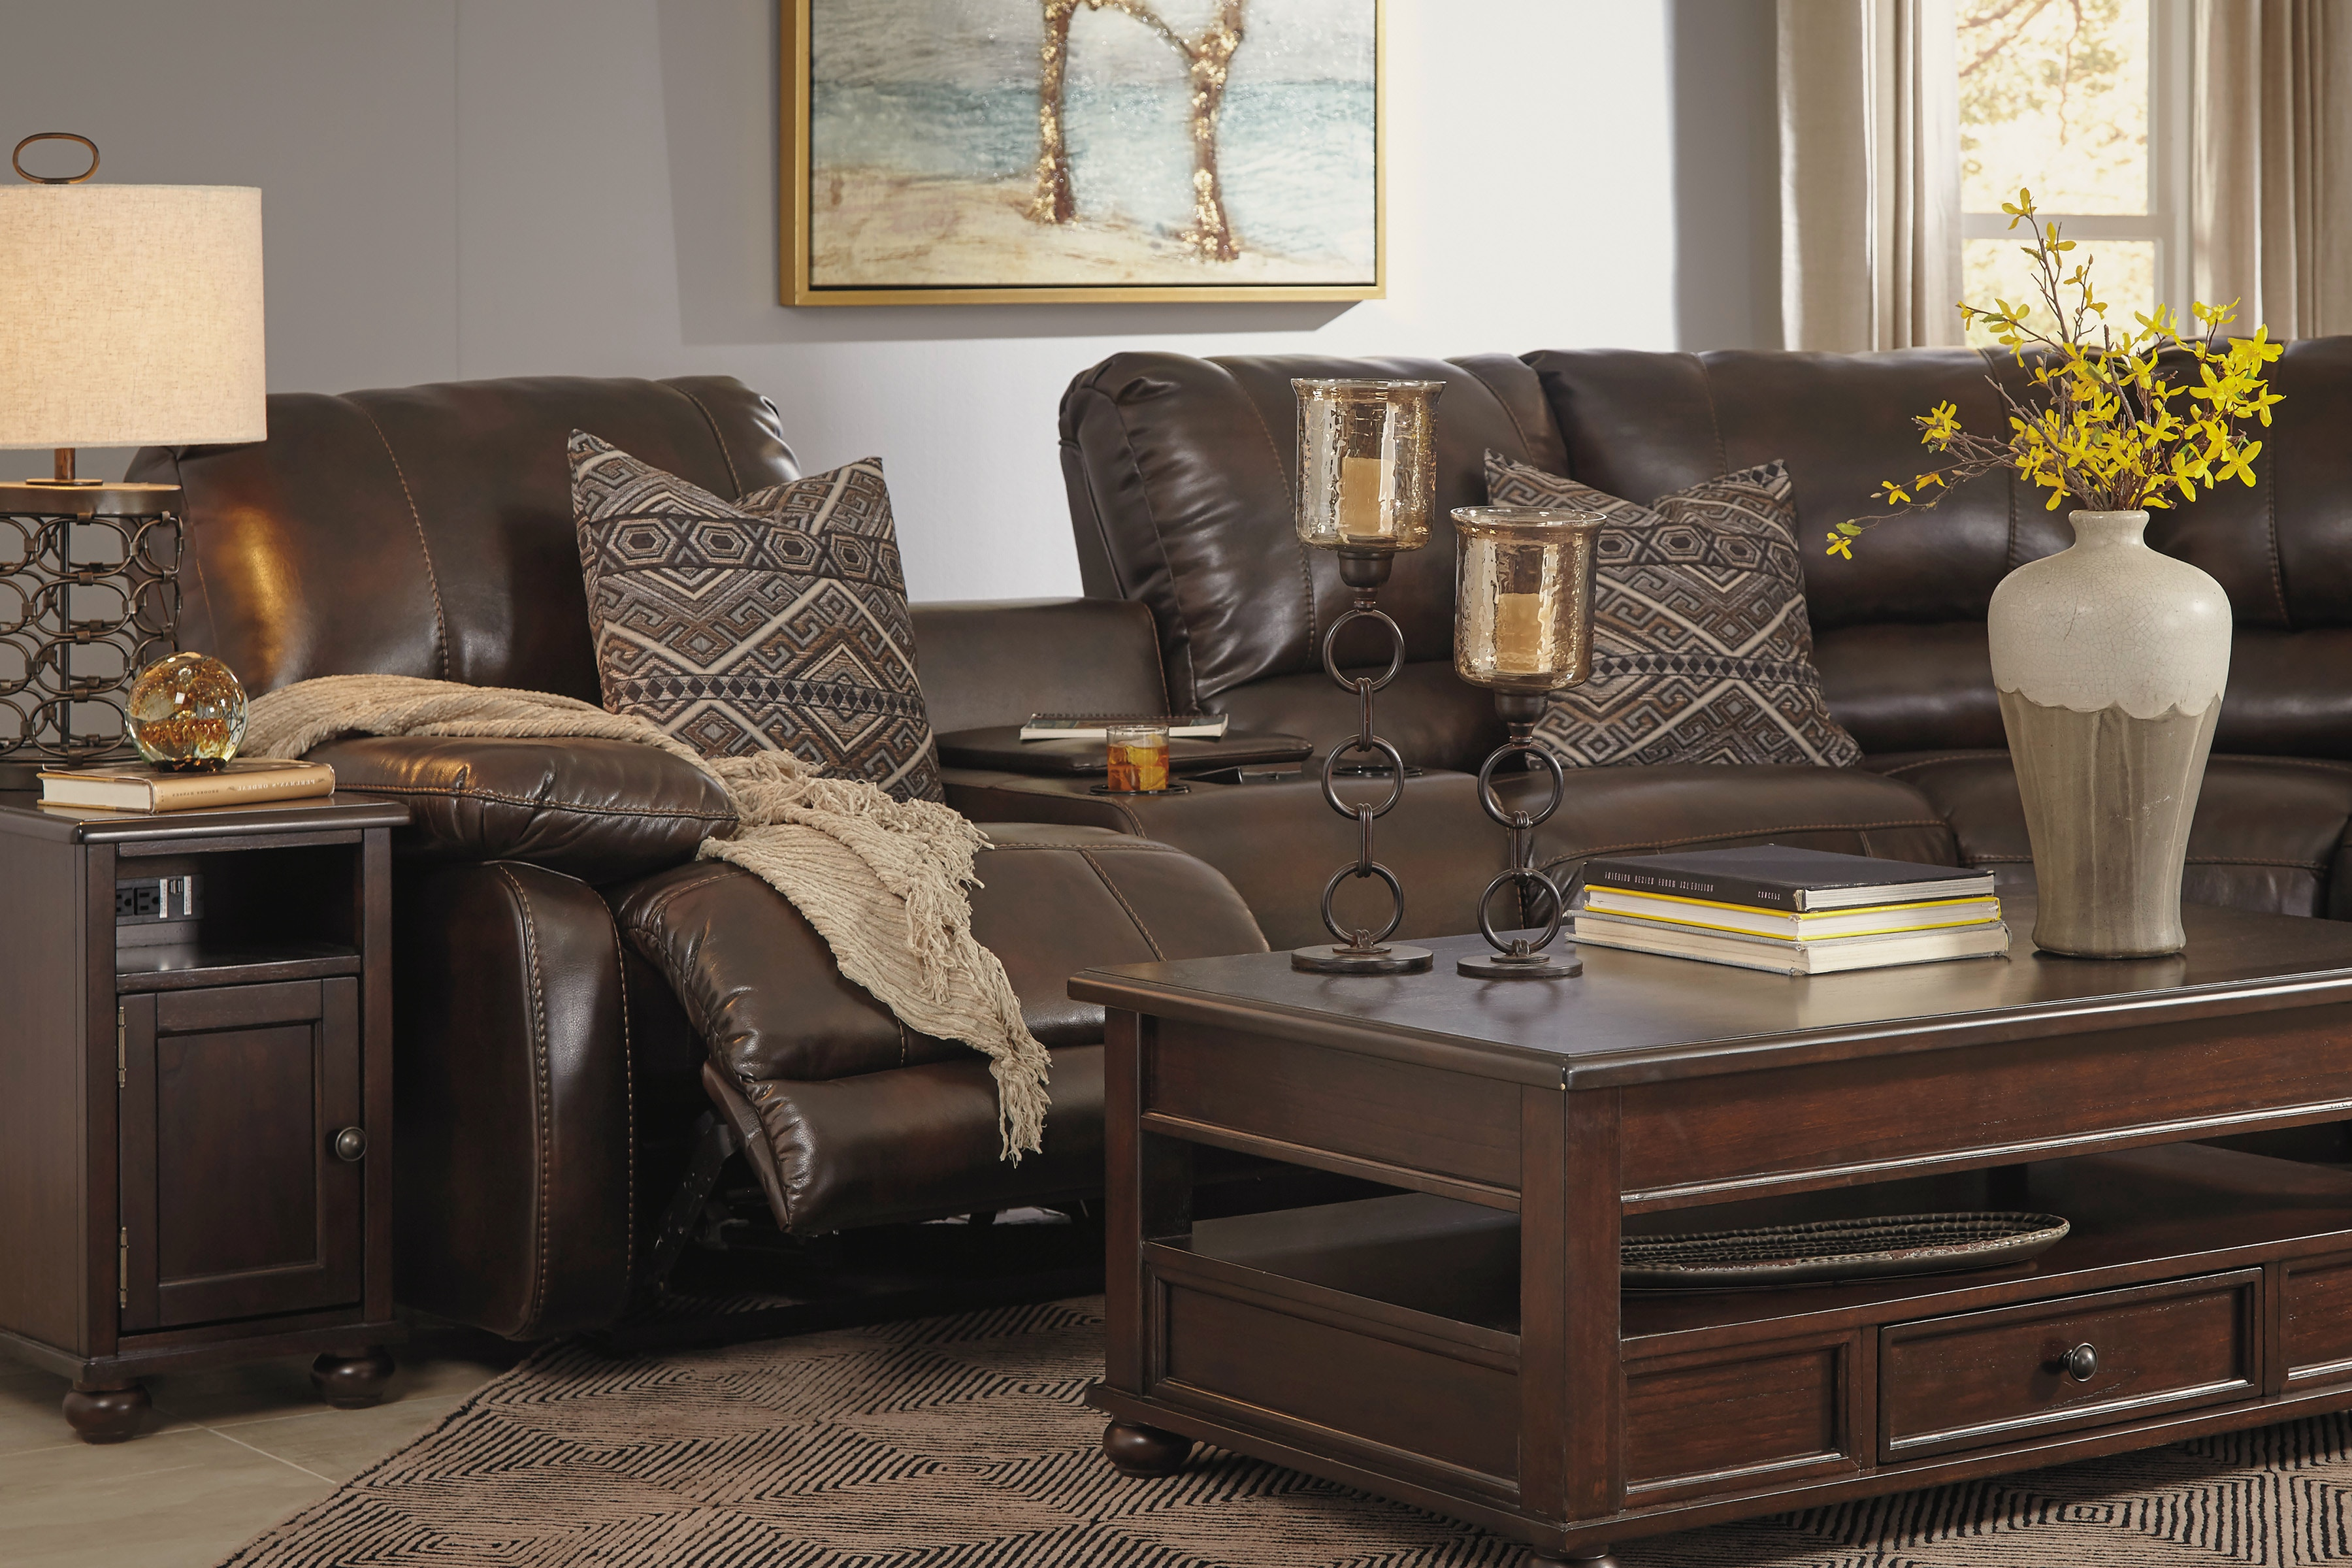 Signature Design by Ashley Hallettsville Reclining Sectional w/ POWER RECLINING CONSOLE 3530062 LAF PWR CONSOLE & Hallettsville Reclining Sectional w/ POWER RECLINING CONSOLE islam-shia.org